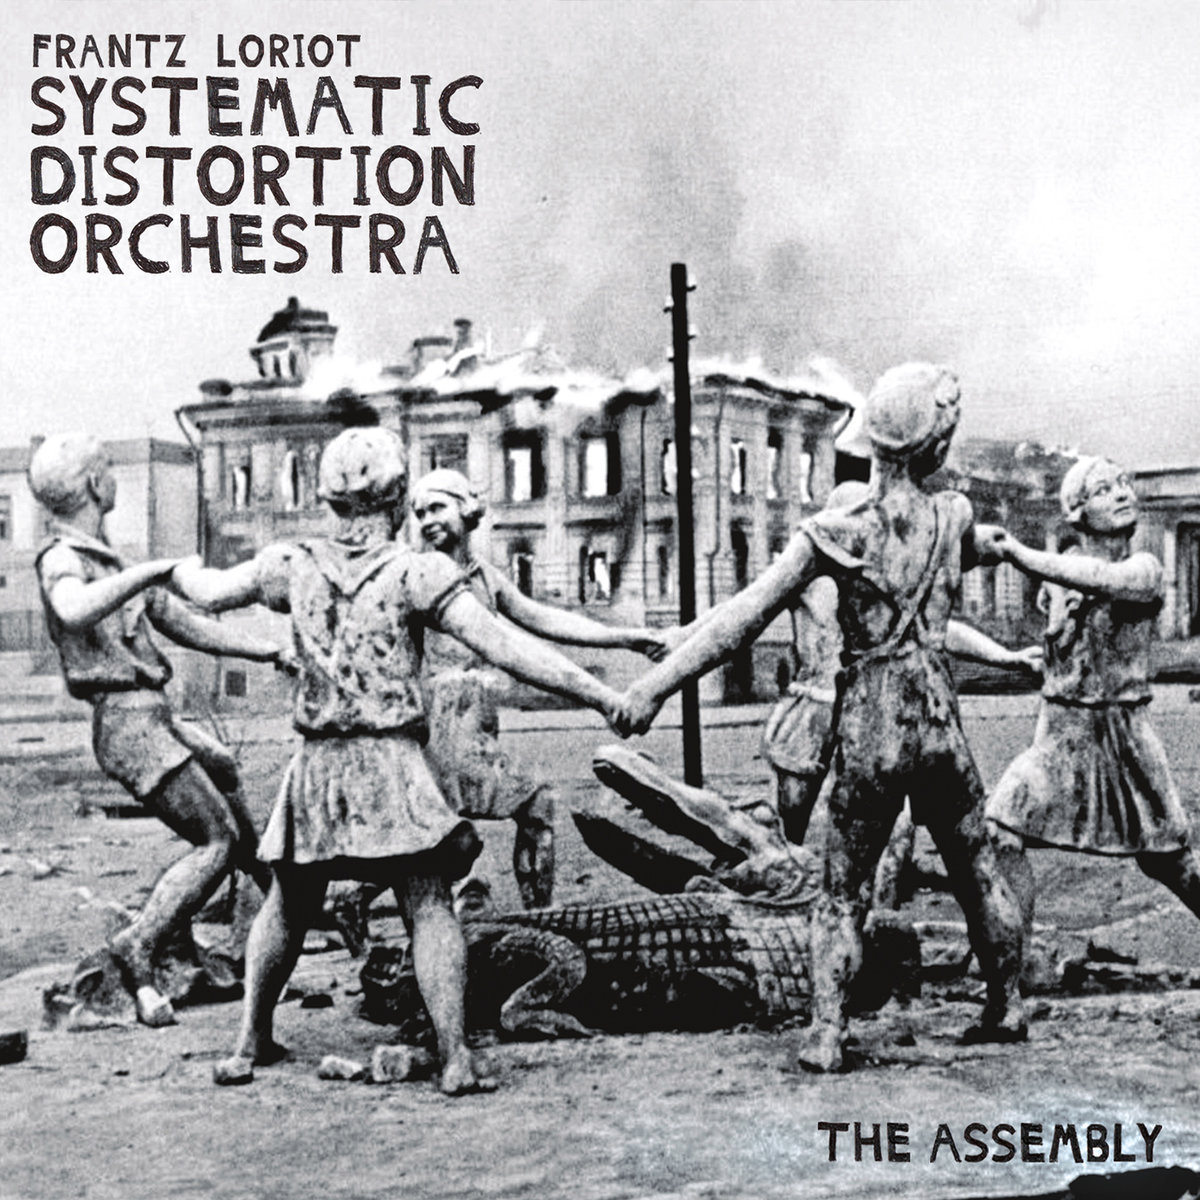 Album Review: The Assembly (2016, Out Now Recordings) by Frantz Loriot's Systematic Distortion Orchestra